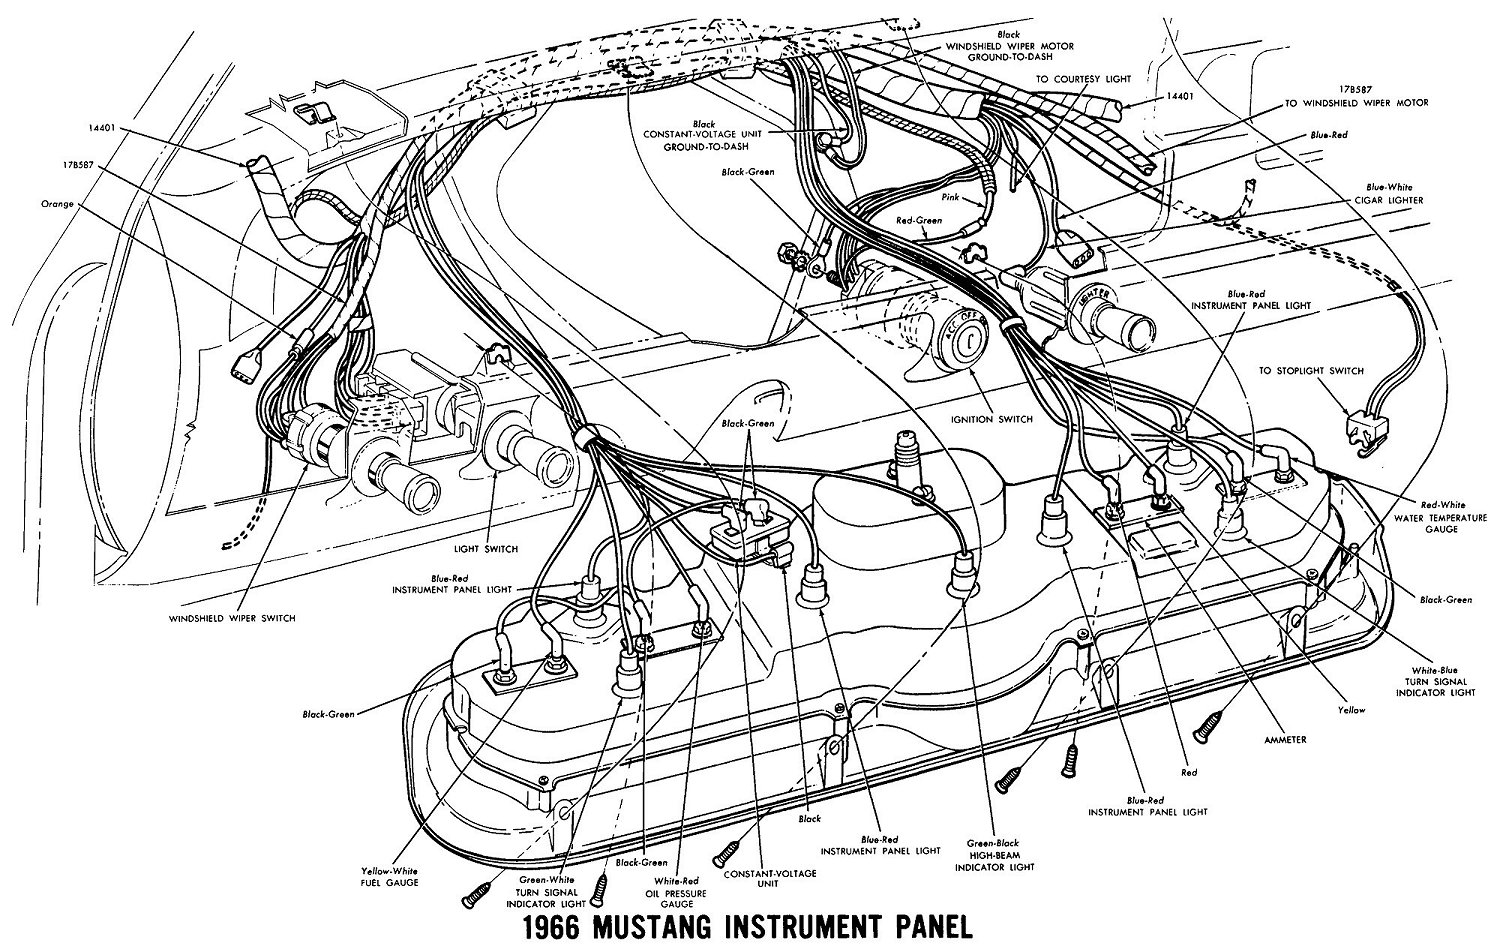 66instr 1966 mustang wiring diagrams average joe restoration 1965 Mustang Restoration Guide at n-0.co